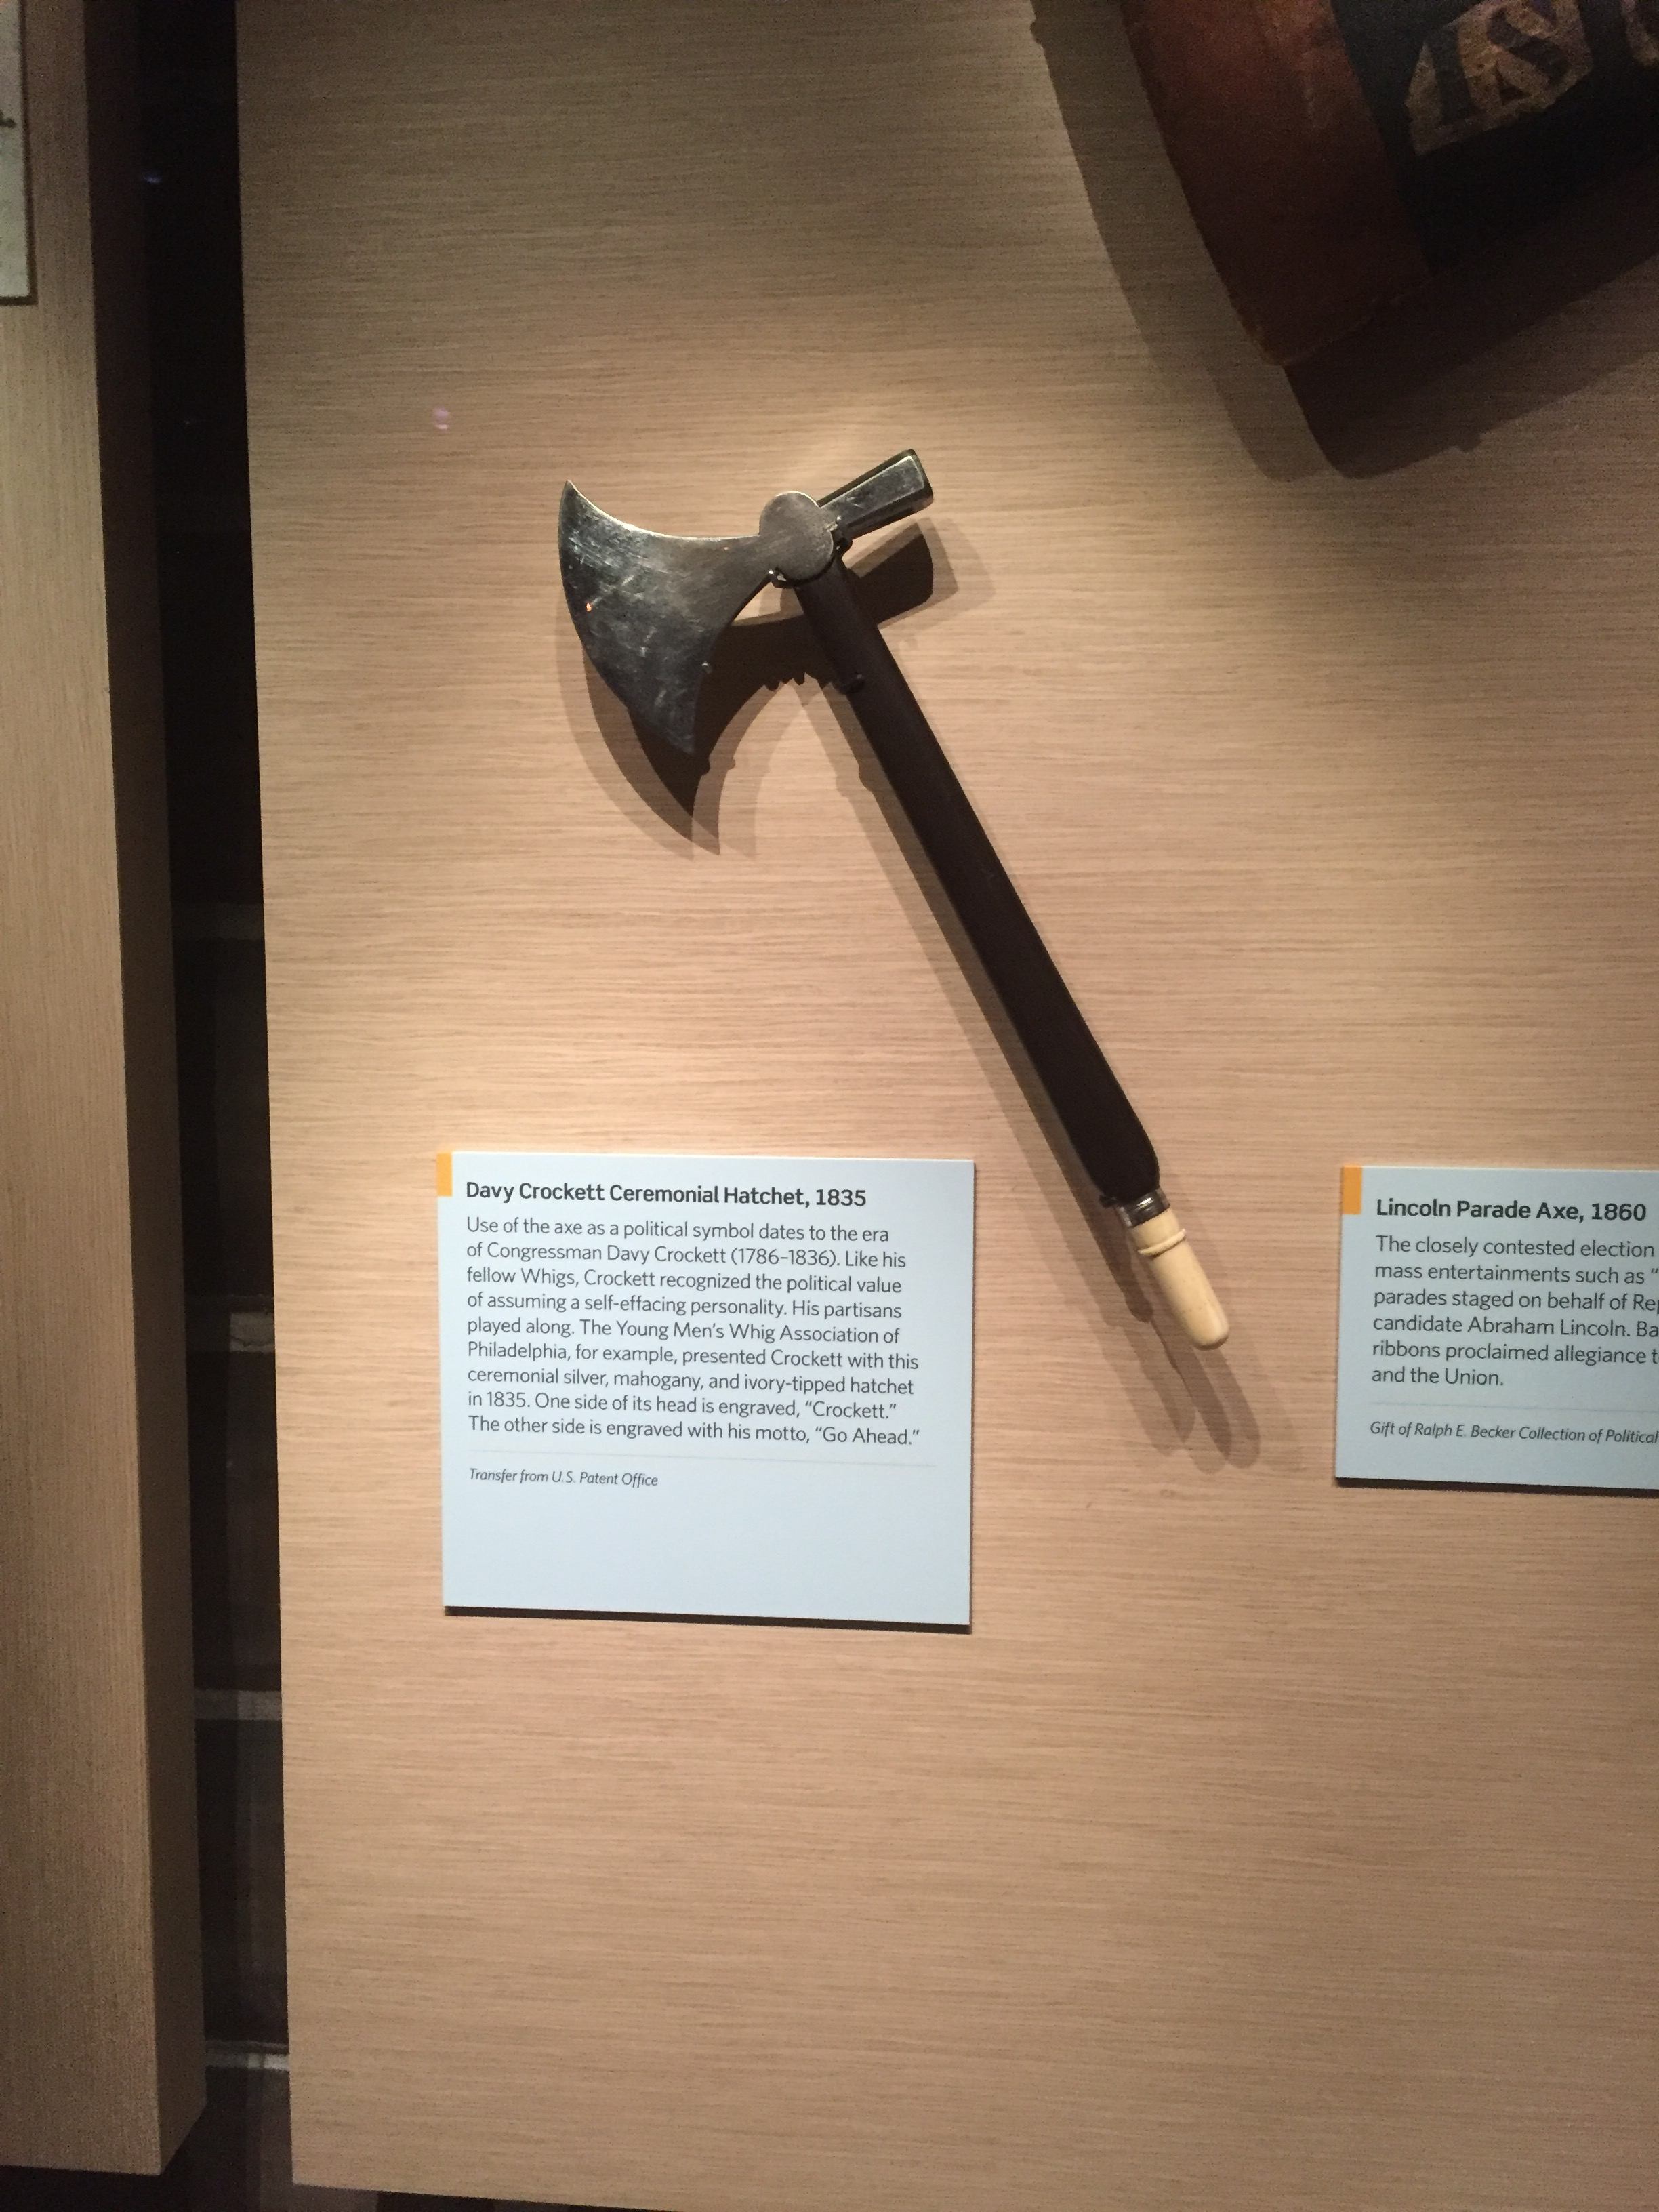 Here's an object with a Tennessee connection. Davy Crockett received this  ceremonial hatchet from a group of admirers in 1835.